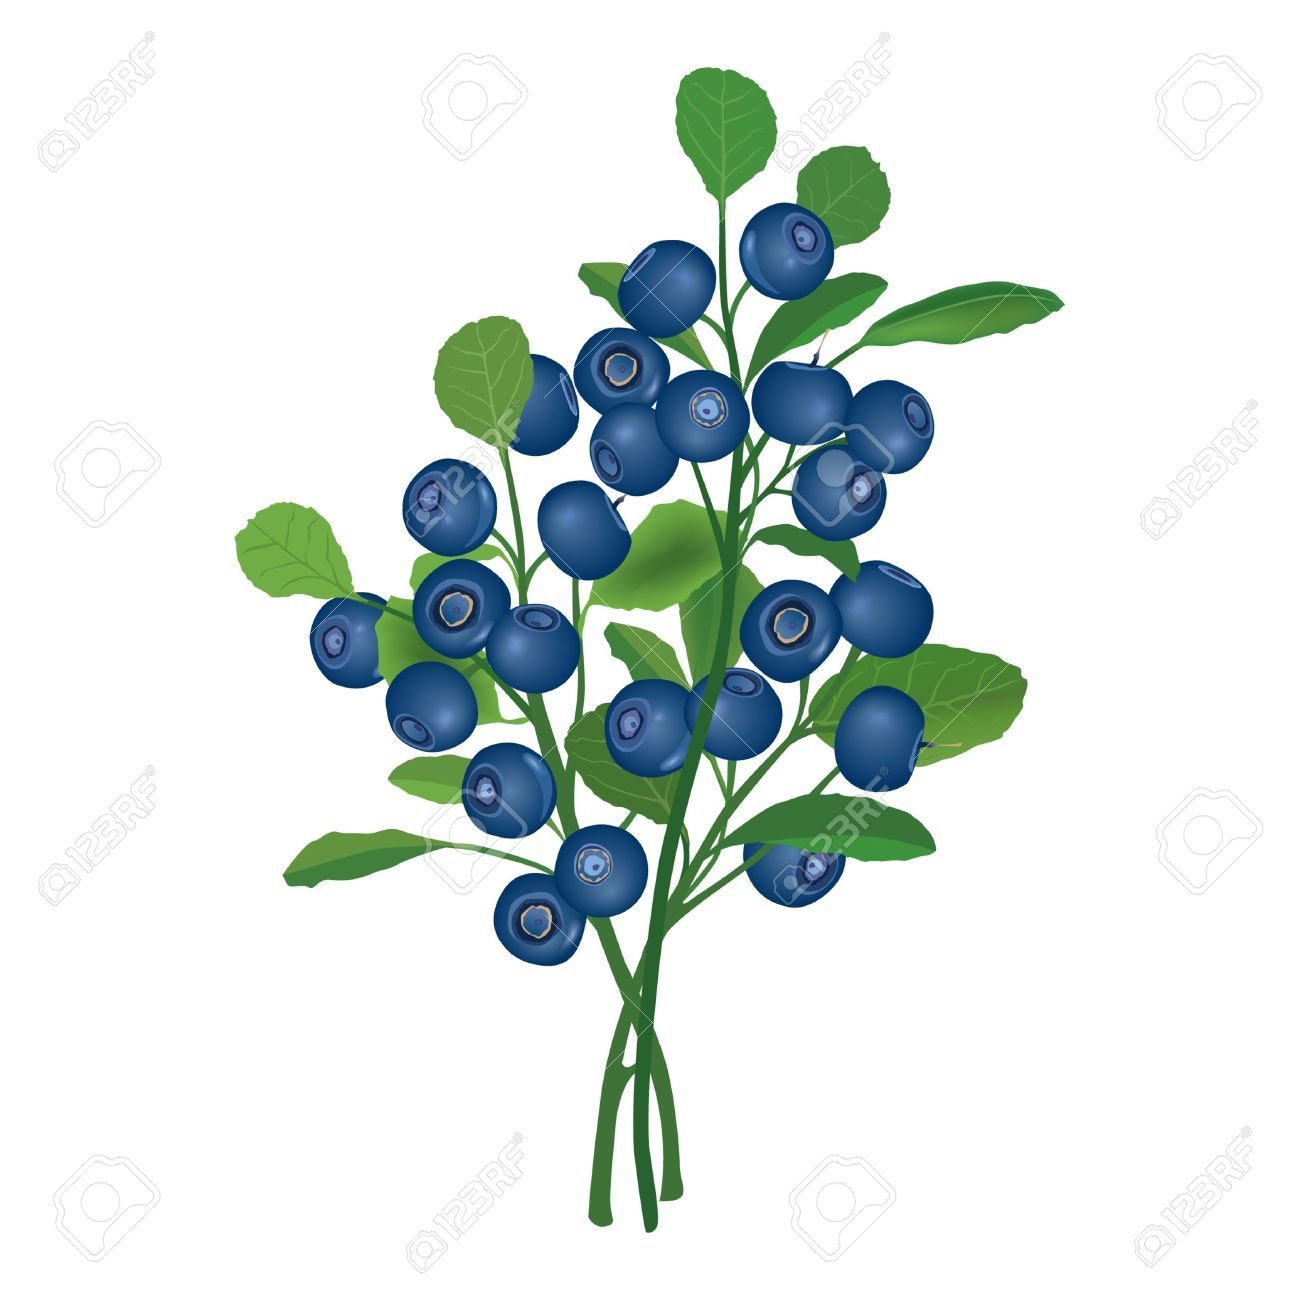 Bushes clipart blueberry. Illustration nc tattoo in